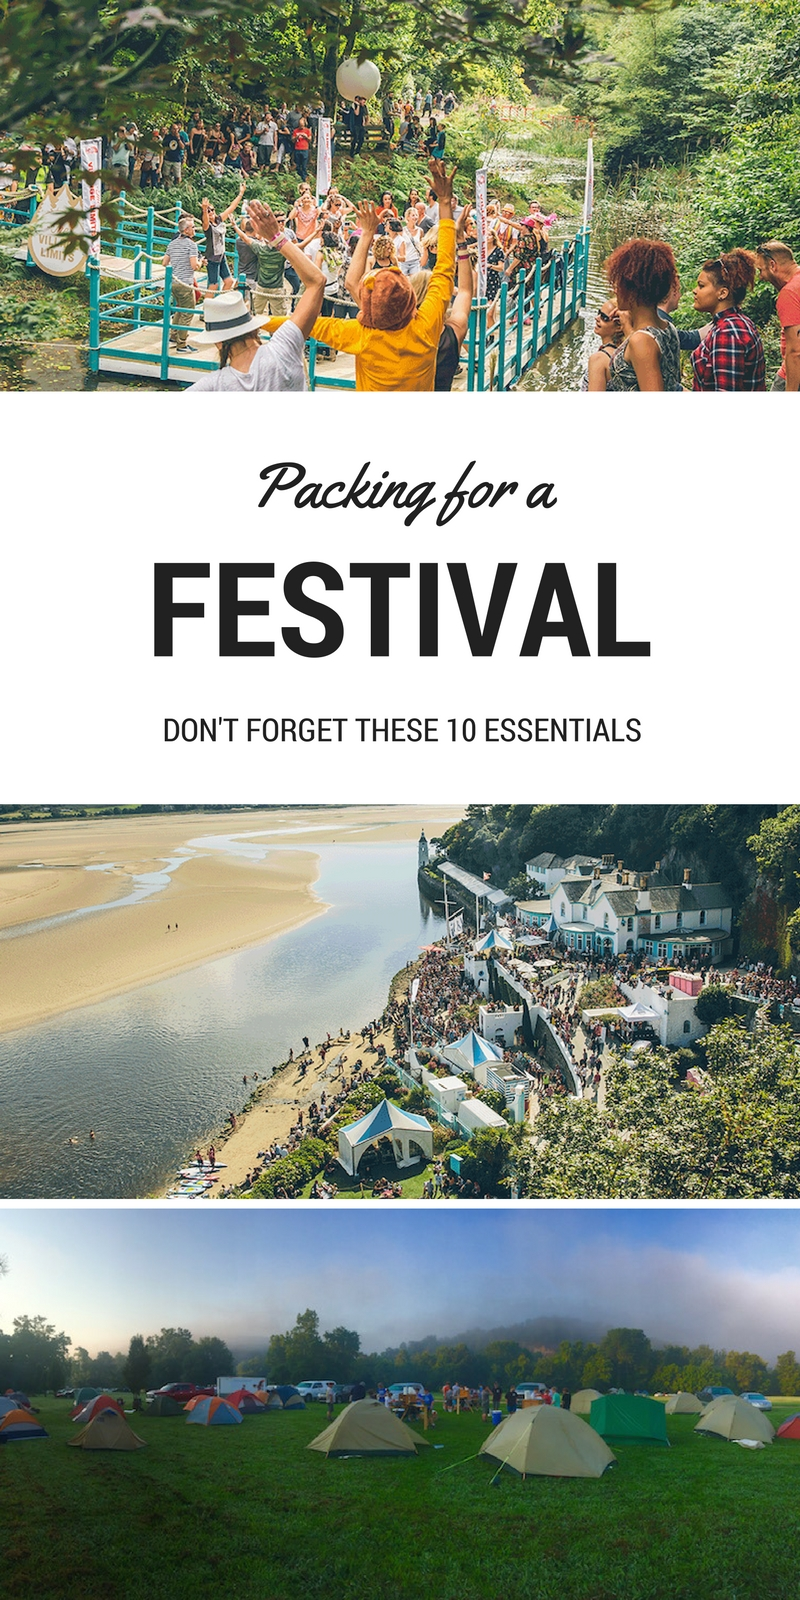 Festival Packing List - Essential Items